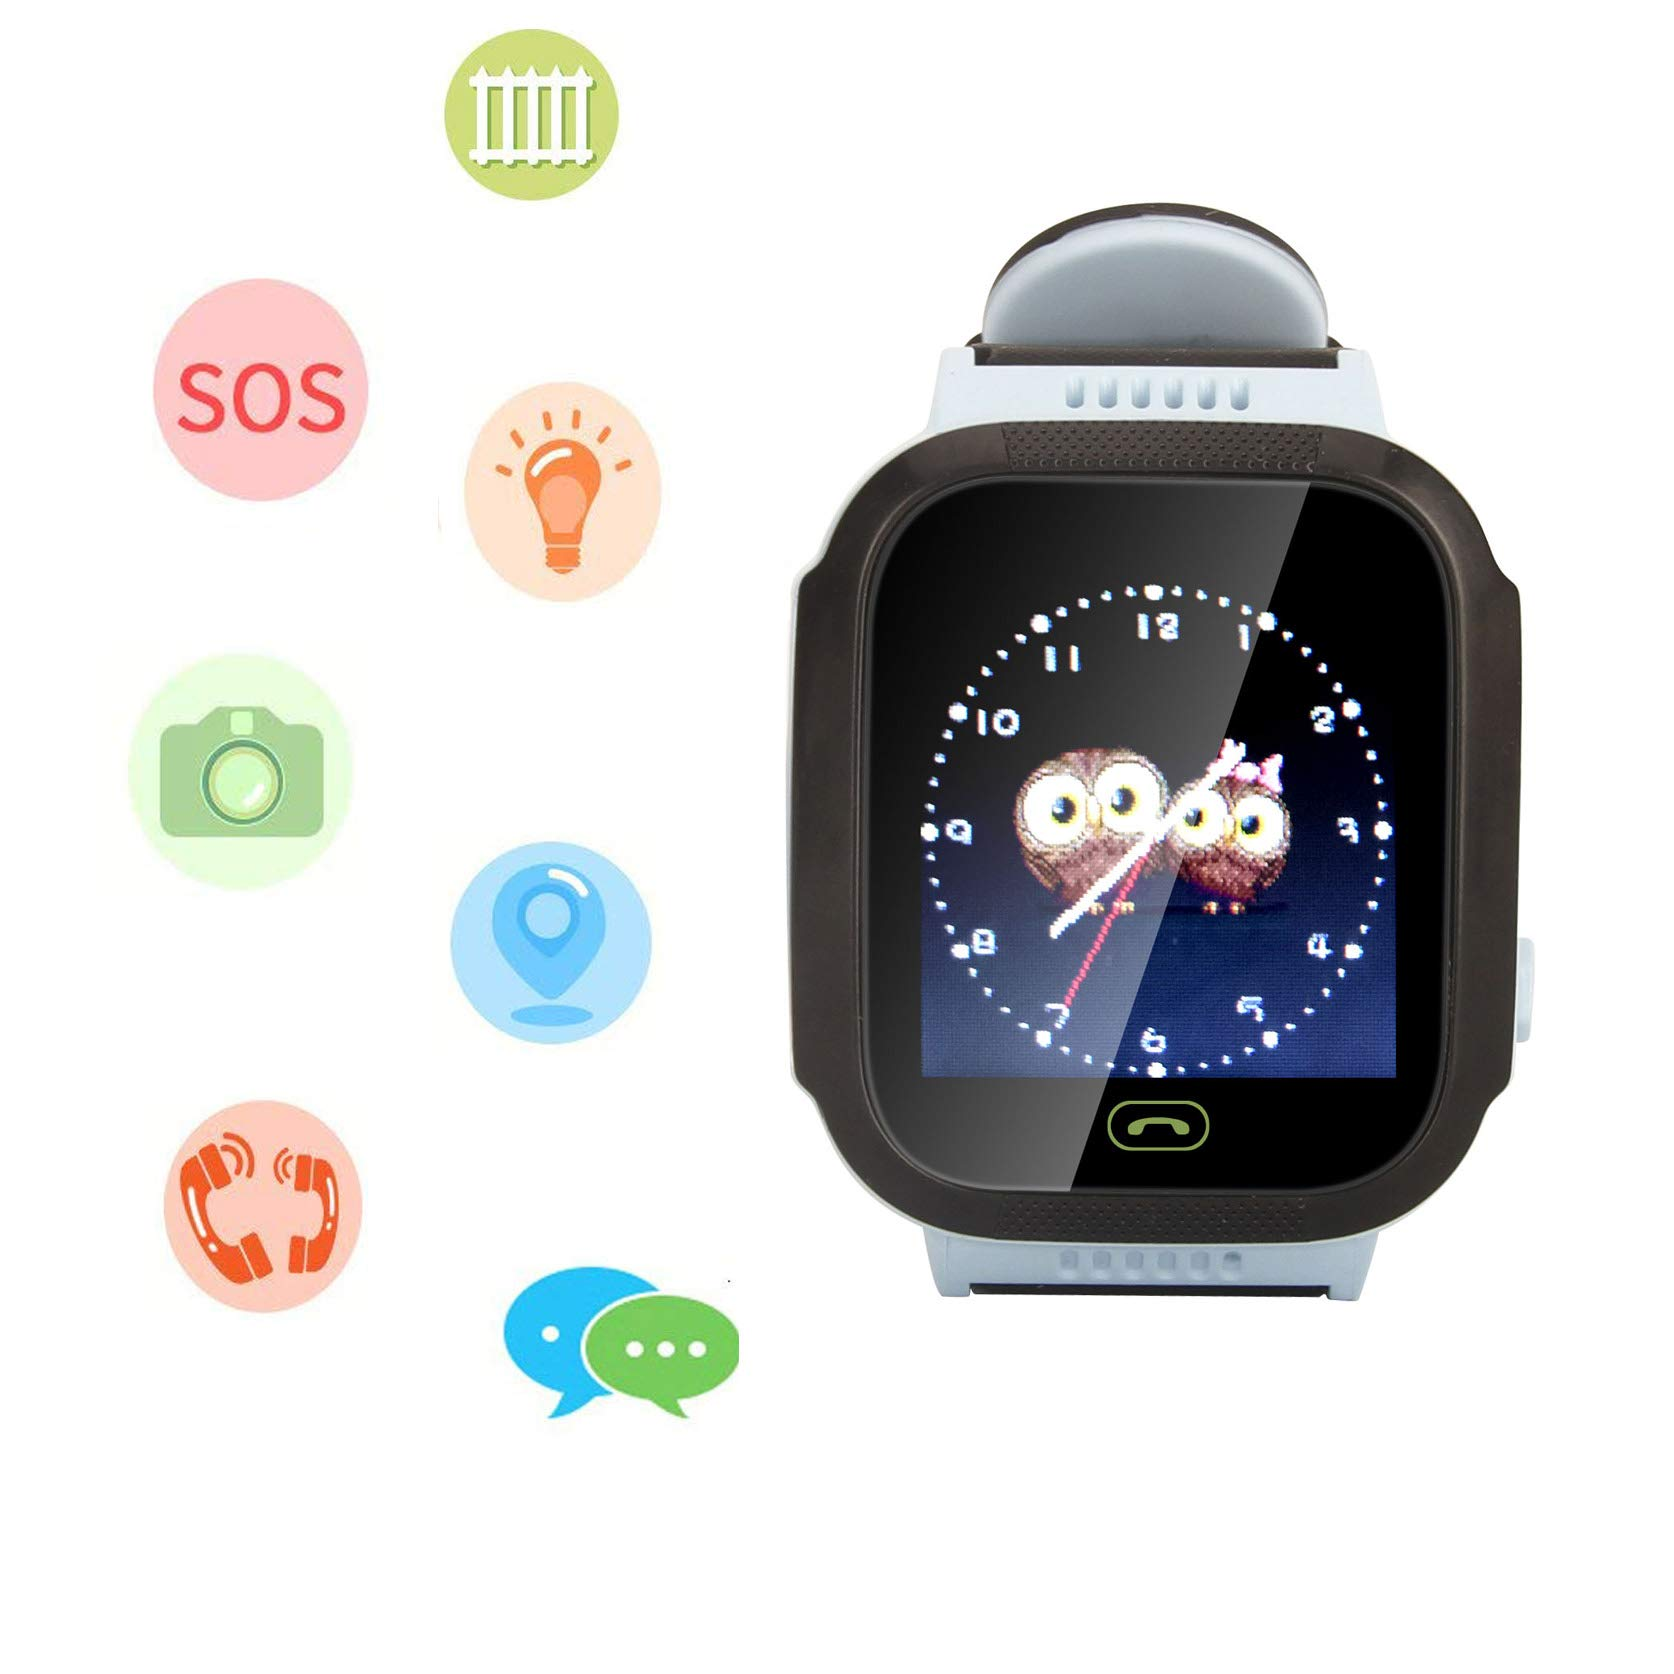 Smart Watch for Kids, LBS Monitor Locator Watch Phone Two-way Call Activity Tracker With  Electronic Fence SOS Safe Anti-Lost Location Device Tracker for Kids Safe by TKSTAR (Image #1)